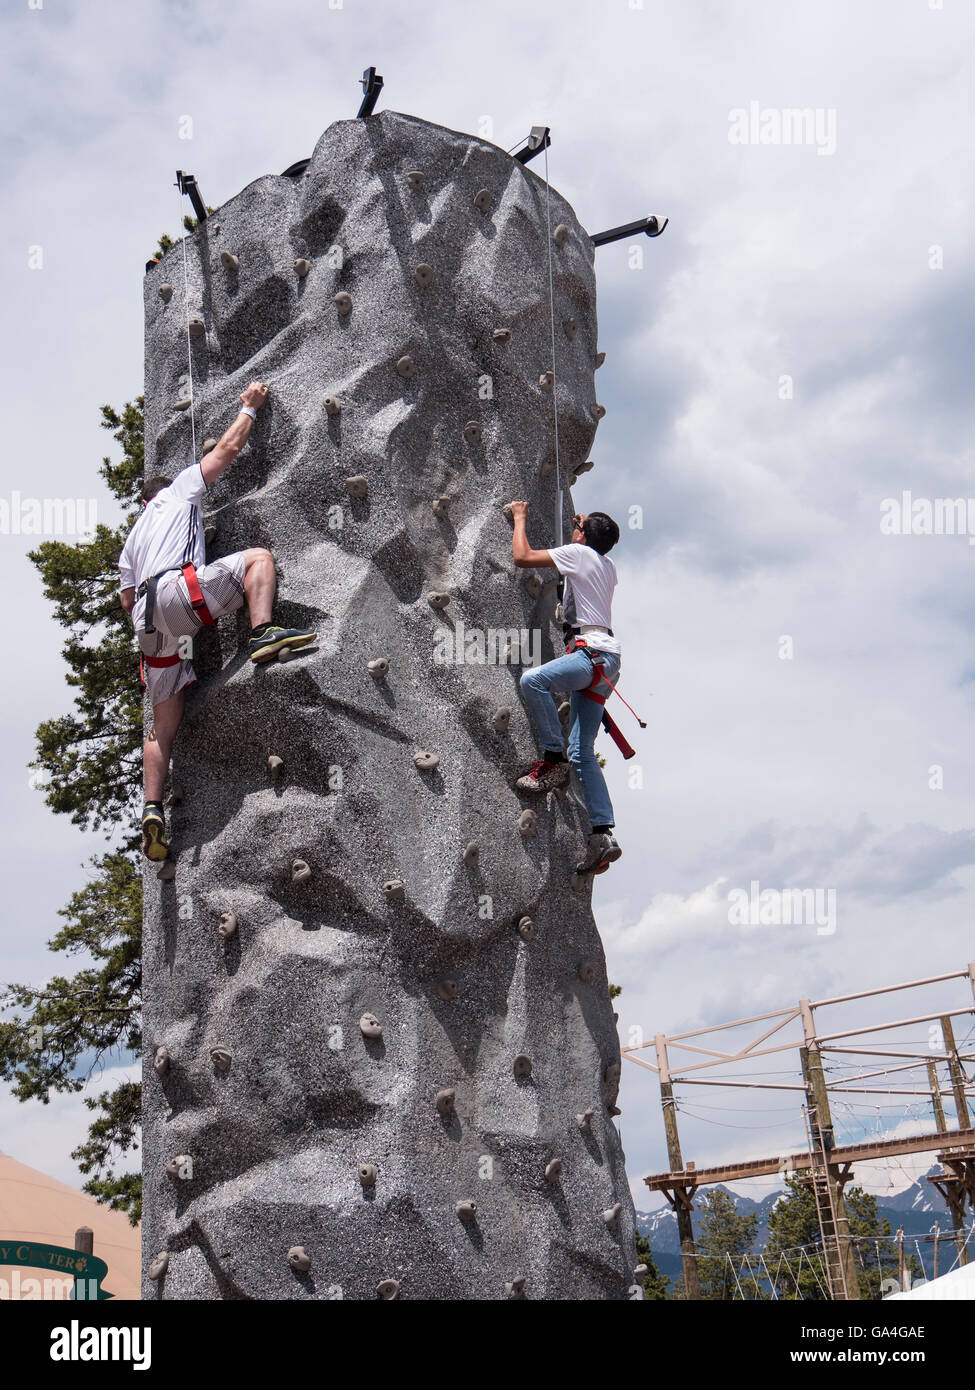 Mountain Goat Climbing Tower, Epic Discovery center at Eagle's Nest, Vail Ski Resort, Vail, Colorado. - Stock Image